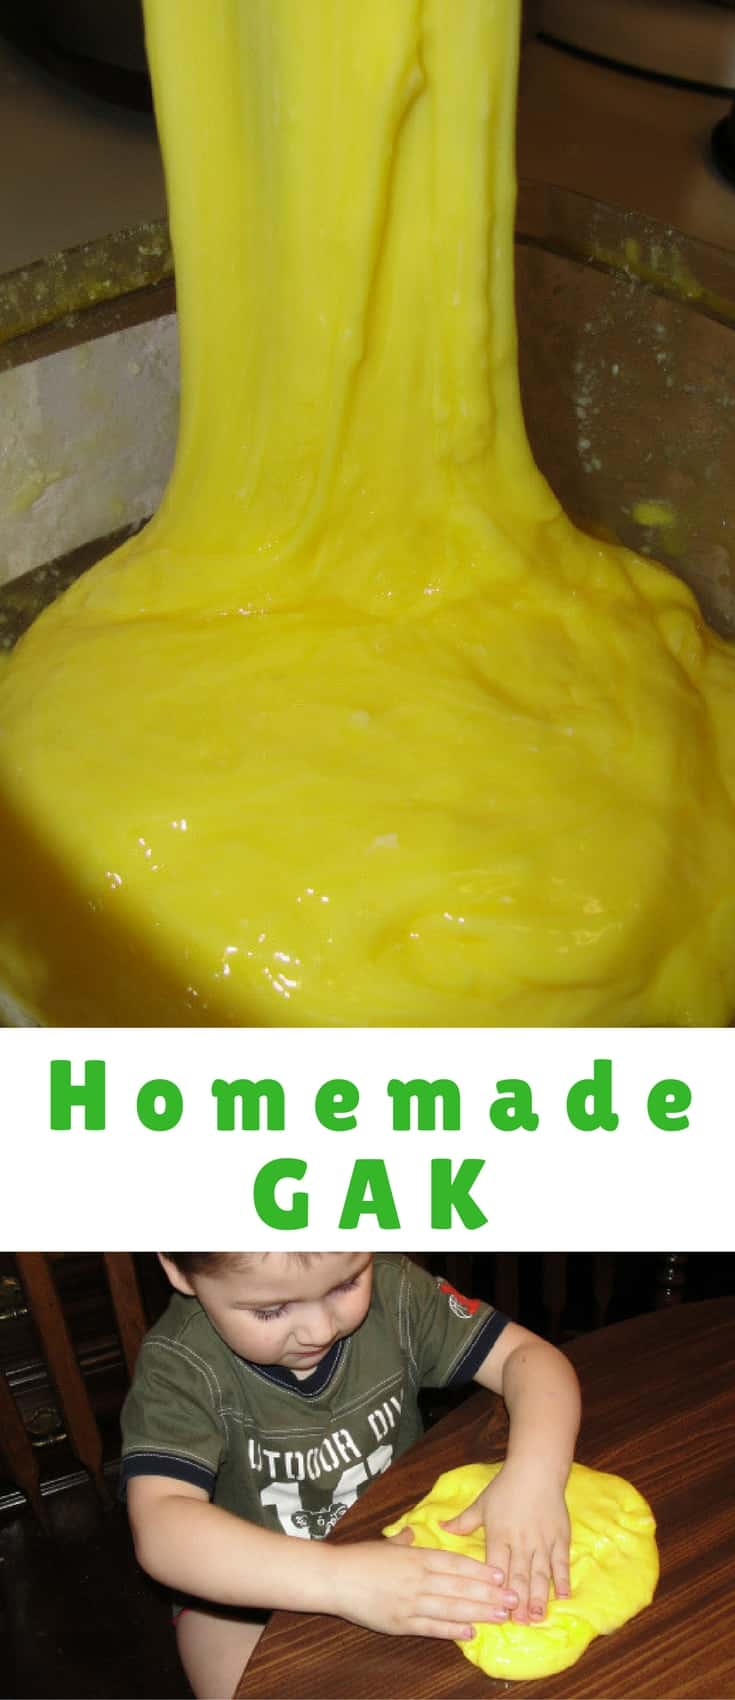 How many others remember Nickelodeon, both their TV shows and their products, vividly from their childhood? Gak was one of my favorites. I vividly remember the 'fart' noises it made when squished, and the way my parents cringed at the thought. It stretched, it squished, it oozed.